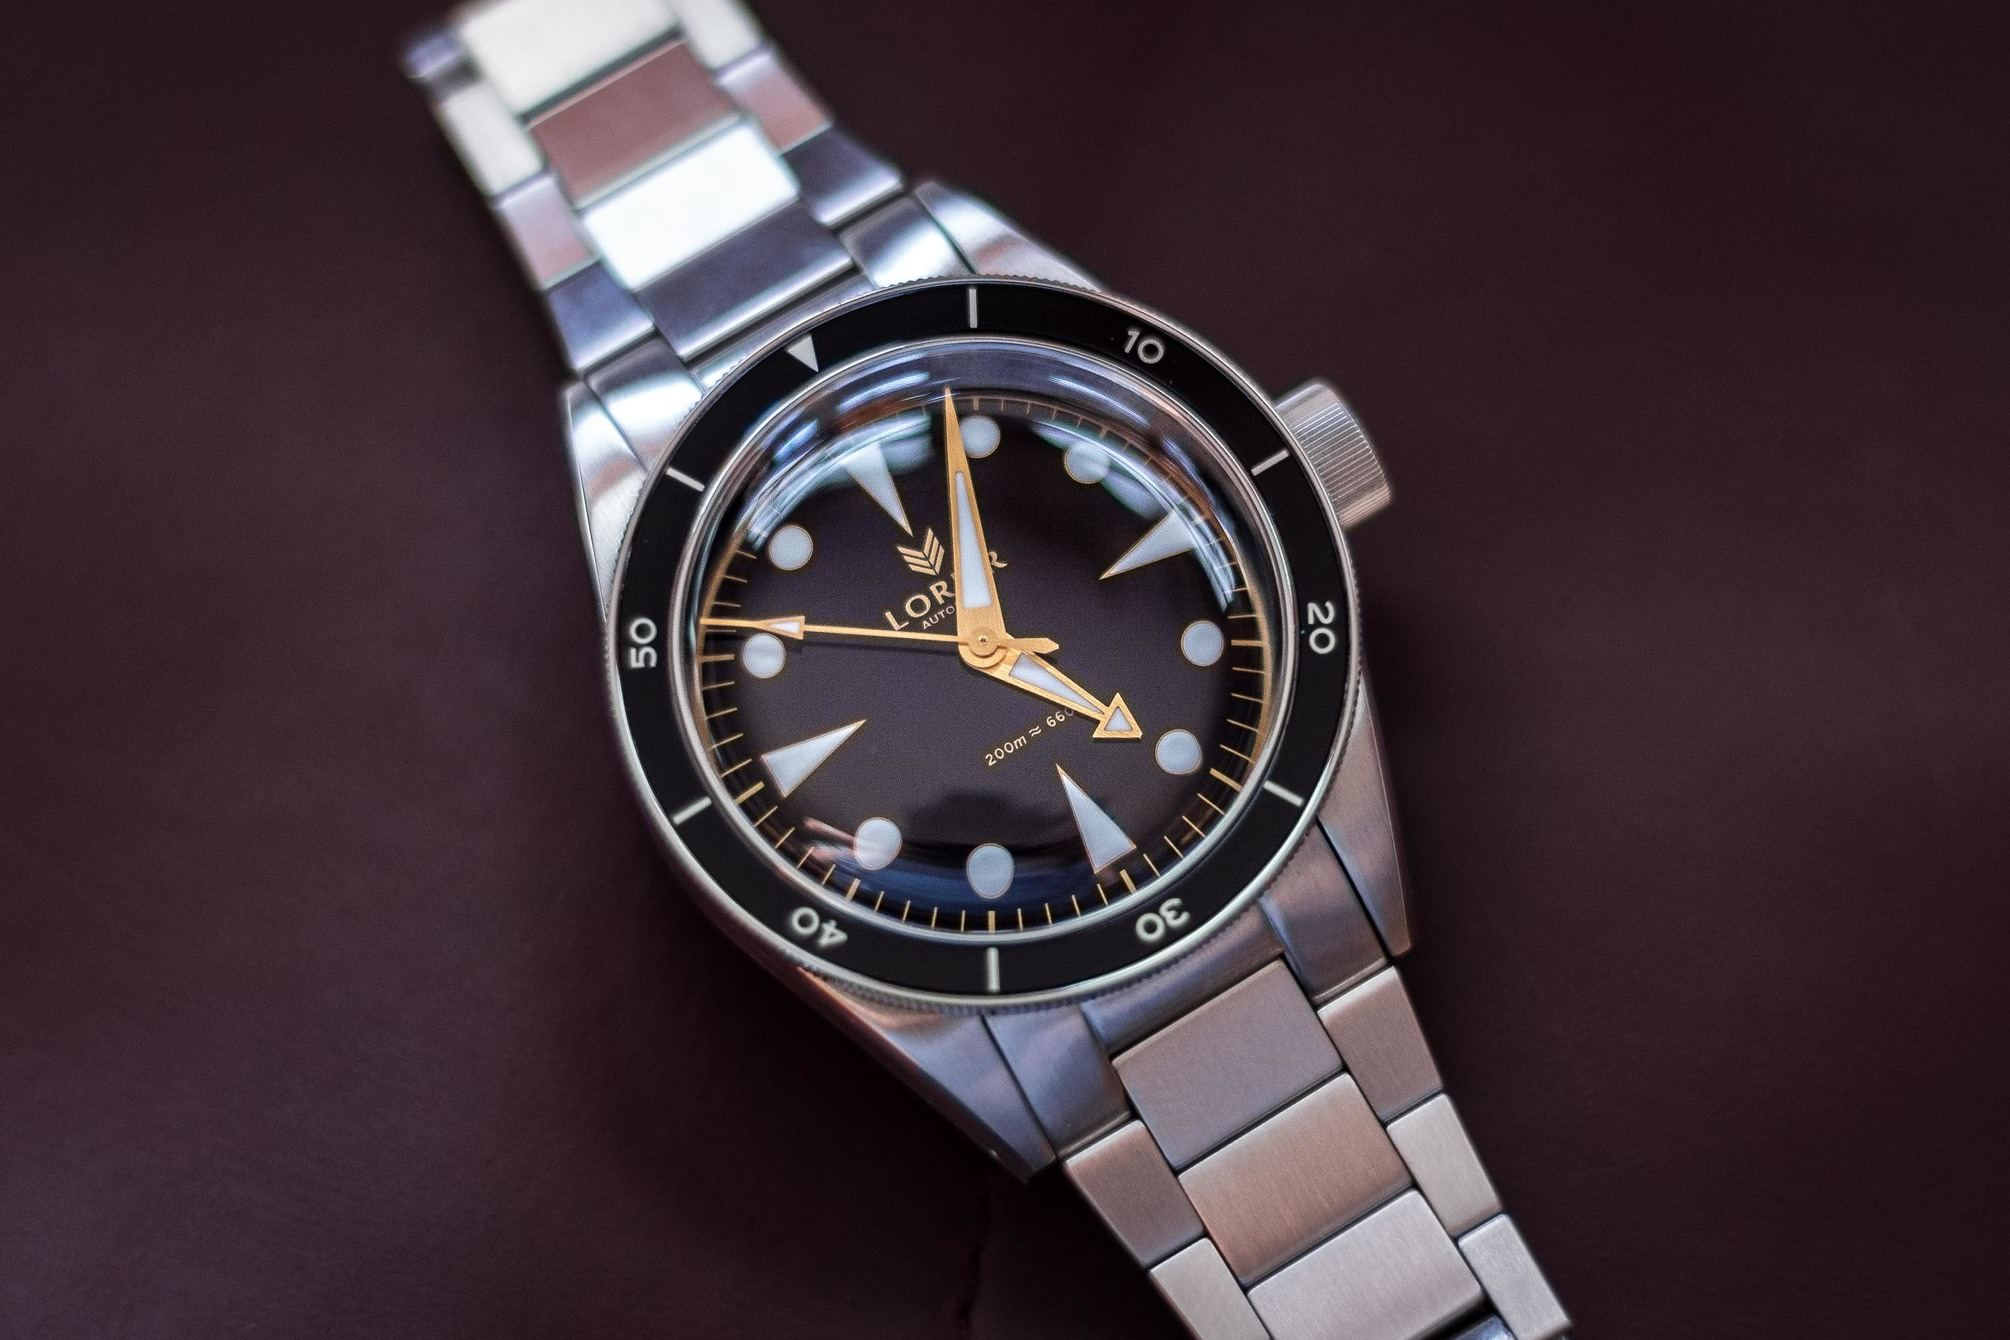 Lorier Neptune the quintessential dive watch